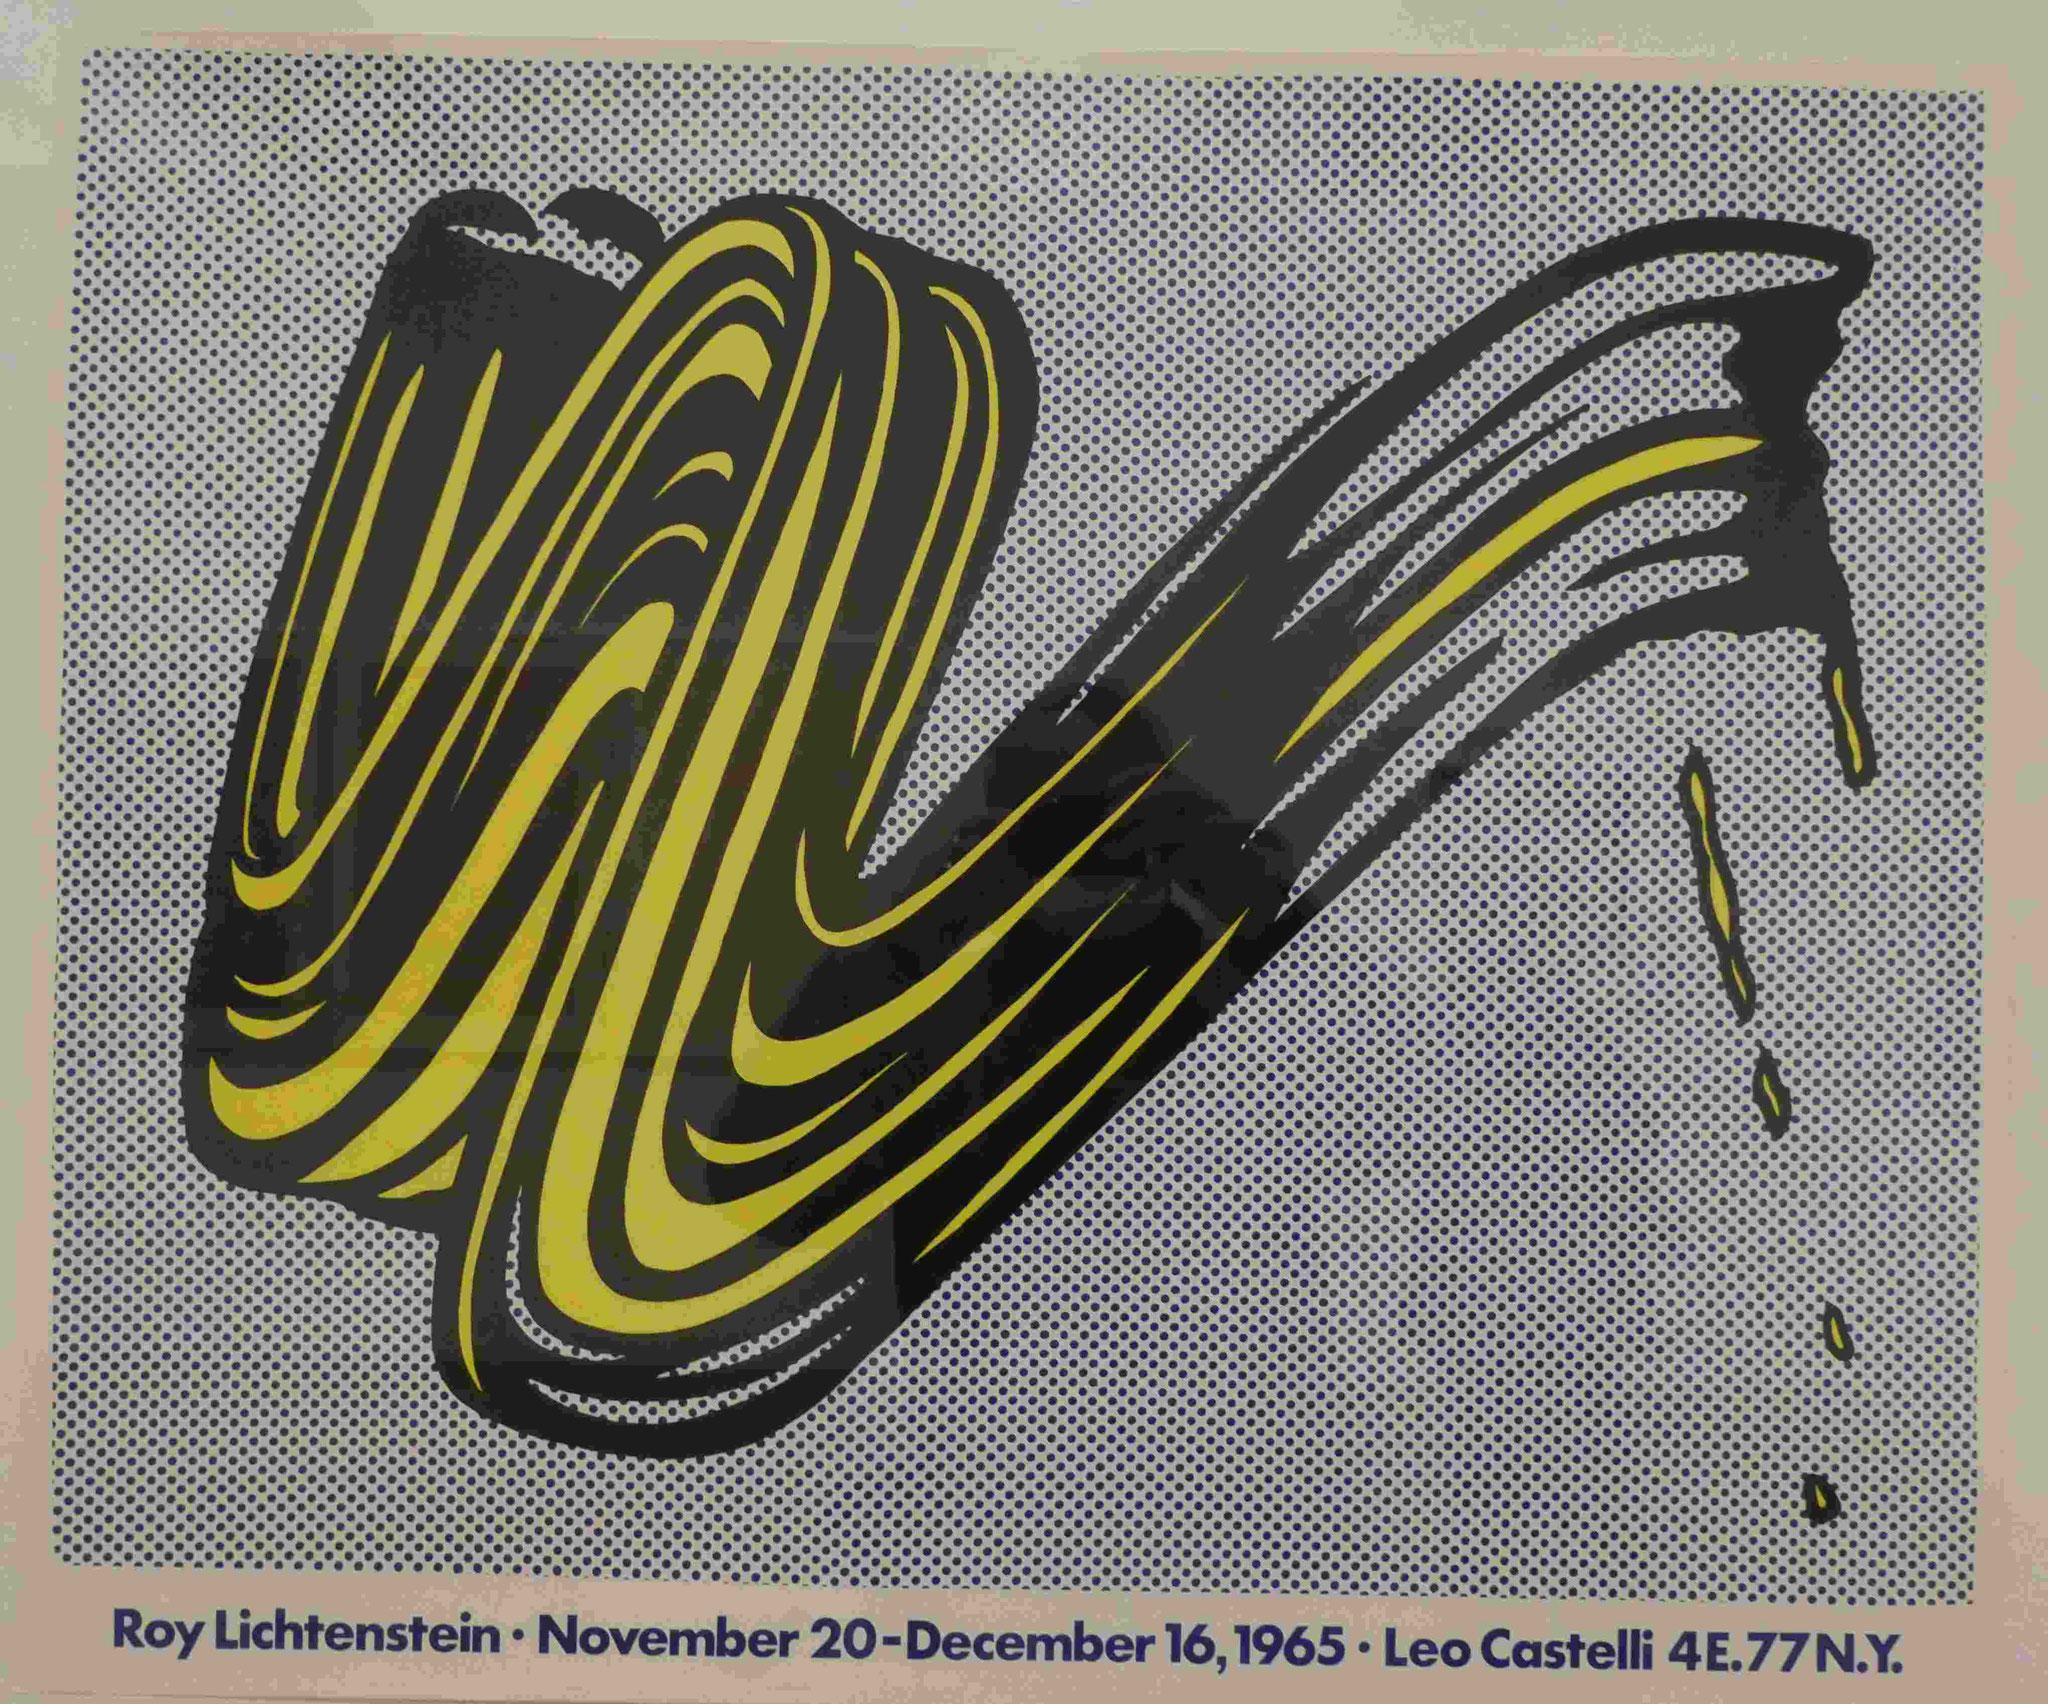 Roy Lichtenstein, Brushstroke, 1965, Siebdruck, Nationalgalerie Berlin